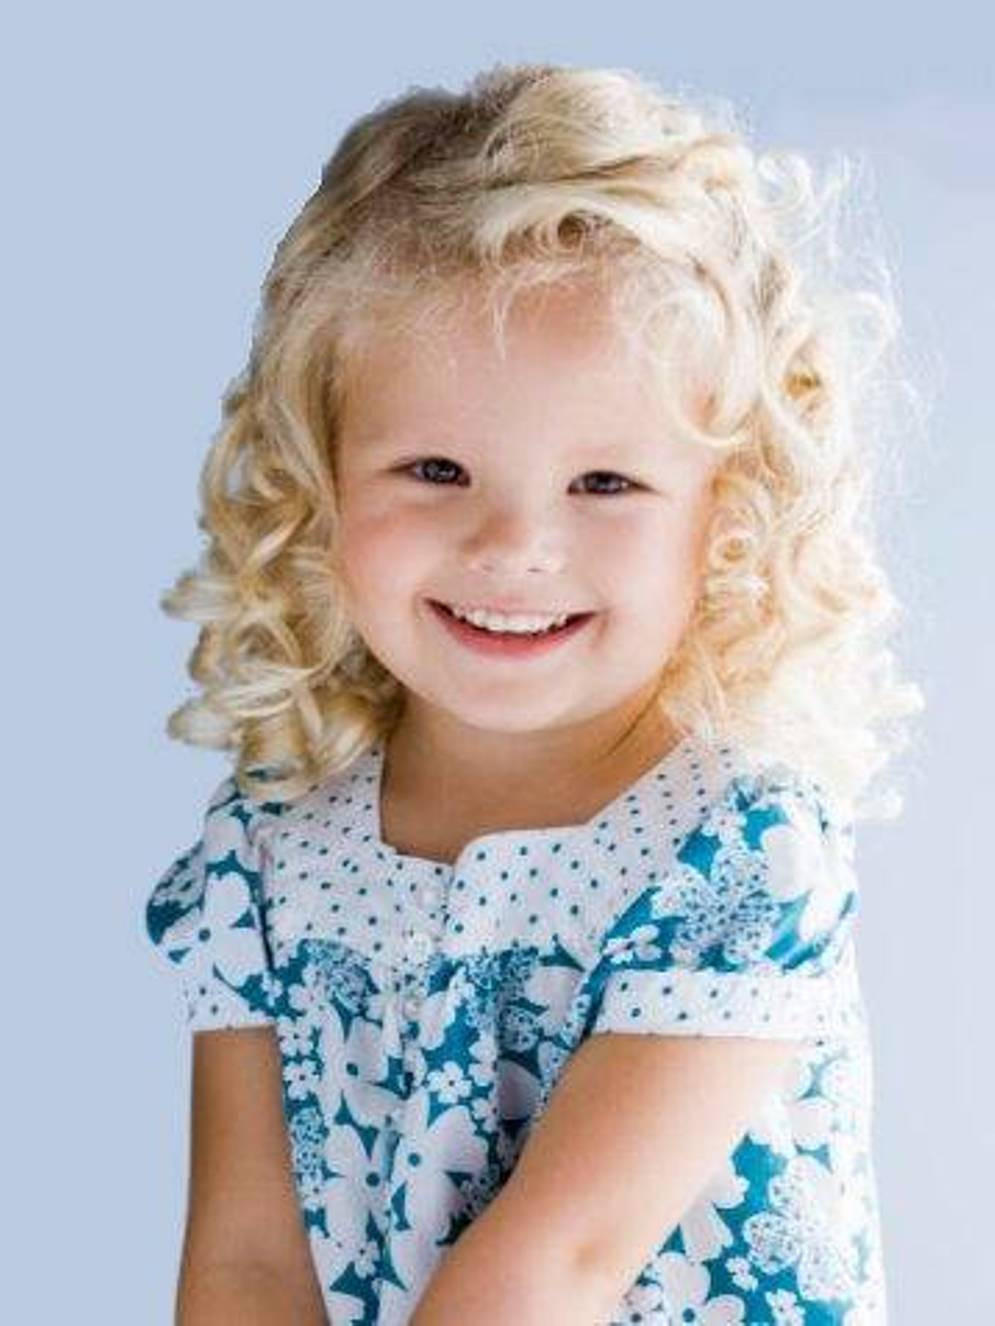 Best ideas about Toddlers Hairstyles For Girls . Save or Pin Top Ten Back to School Kids Haircuts Now.